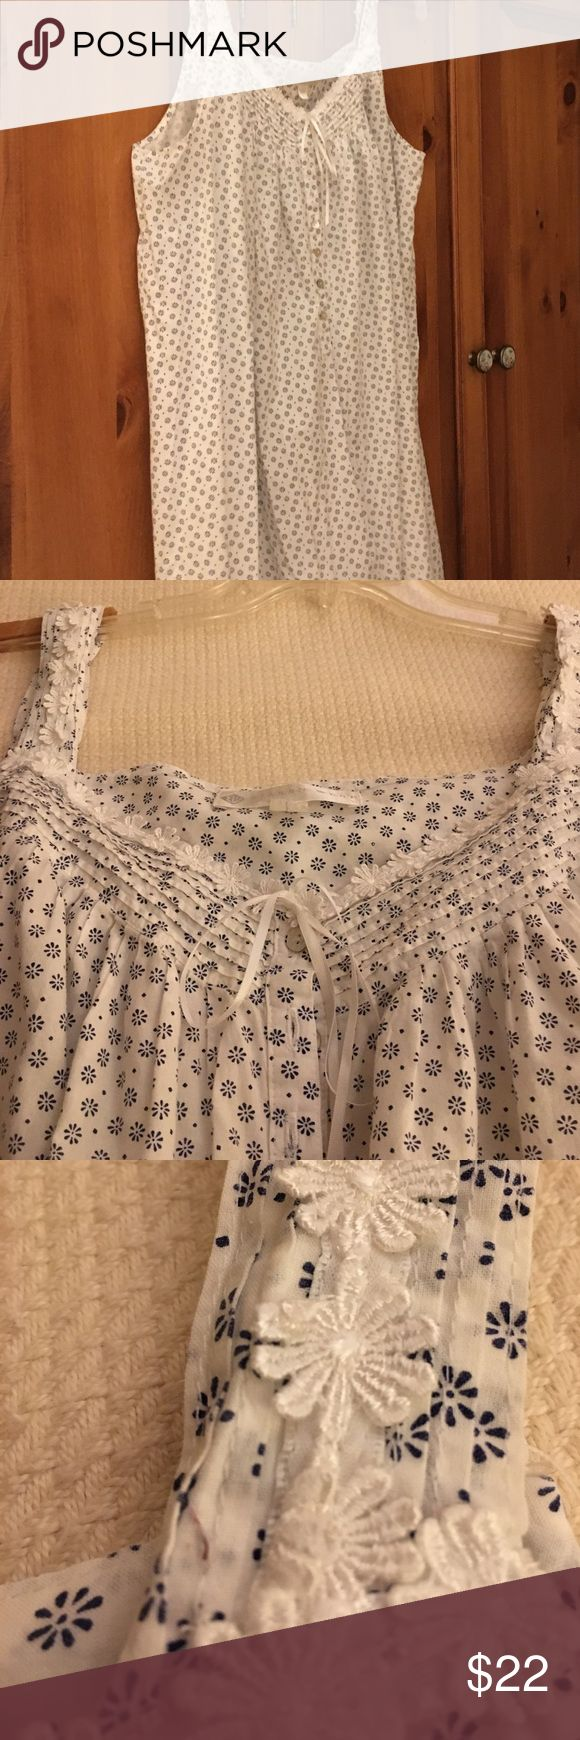 Eileen West long cotton nightgown. Size L. Eileen West long cotton nightgown. Navy daisy print on white ground. Daisy chain lace trim at neckline and shoulder straps. Size L. Eileen West Intimates & Sleepwear Chemises & Slips